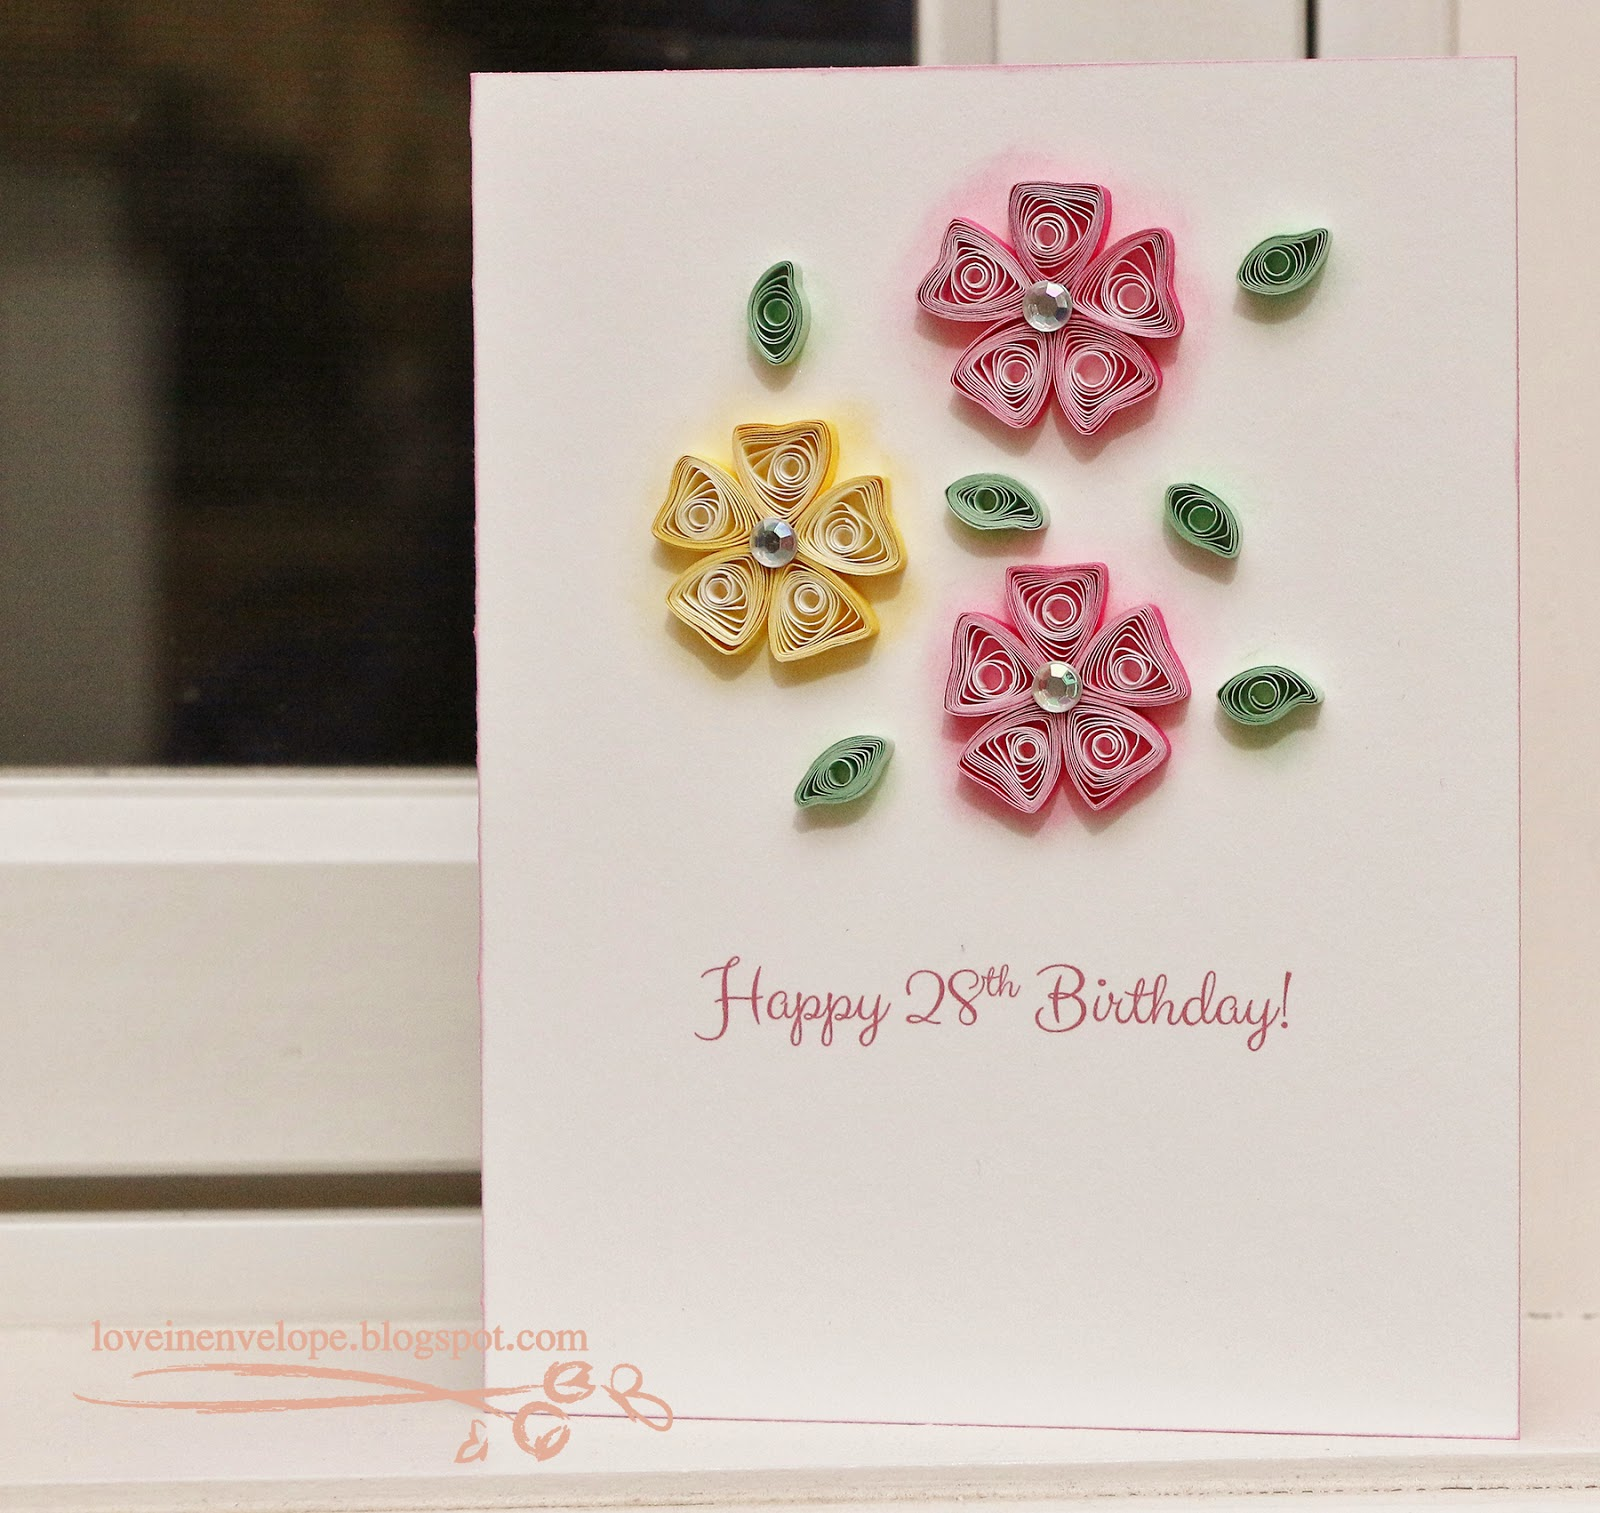 Love in envelope 28th birthday quilled pink yellow flowers card im scheduled for the dentist to get in a permanent crown on that day so itll make for a memorable birthday for that reason if nothing else bookmarktalkfo Gallery